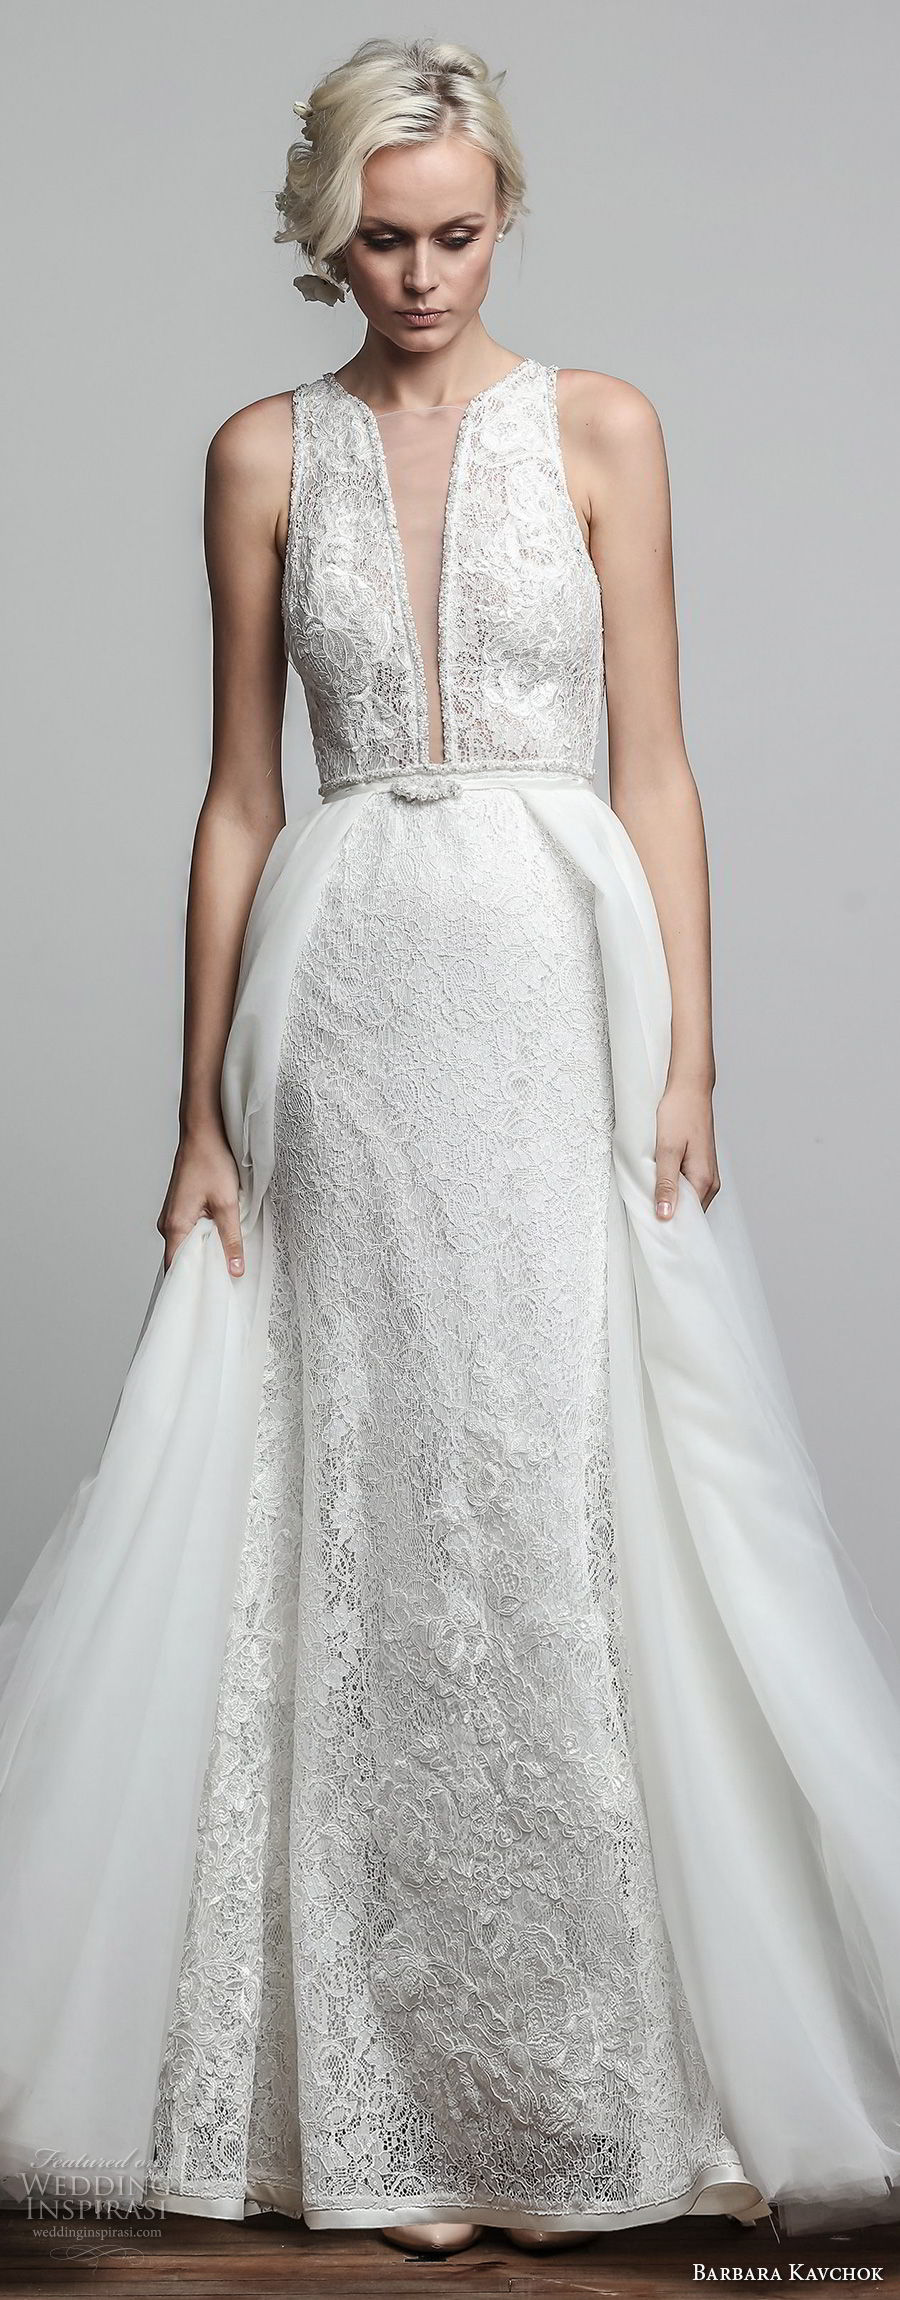 barbara kavchok spring 2018 bridal sleeveless deep plunging v neck full embellishment elegant romantic sheath wedding dress a line overskirt keyhole back chapel train (iris) mv